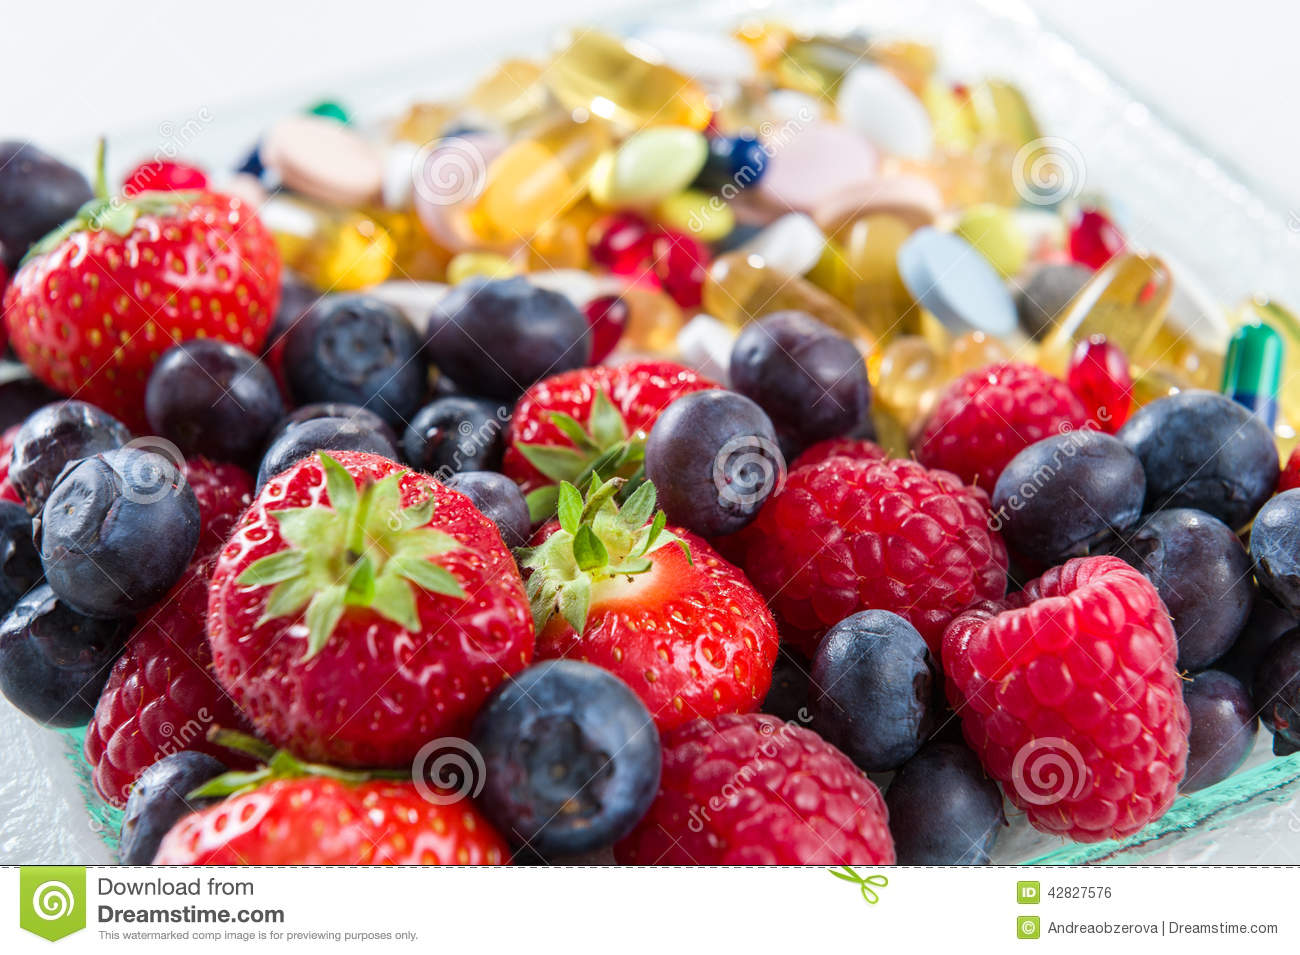 Healthy lifestyle, diet concept, Fruit and vitamin supplements with on white background